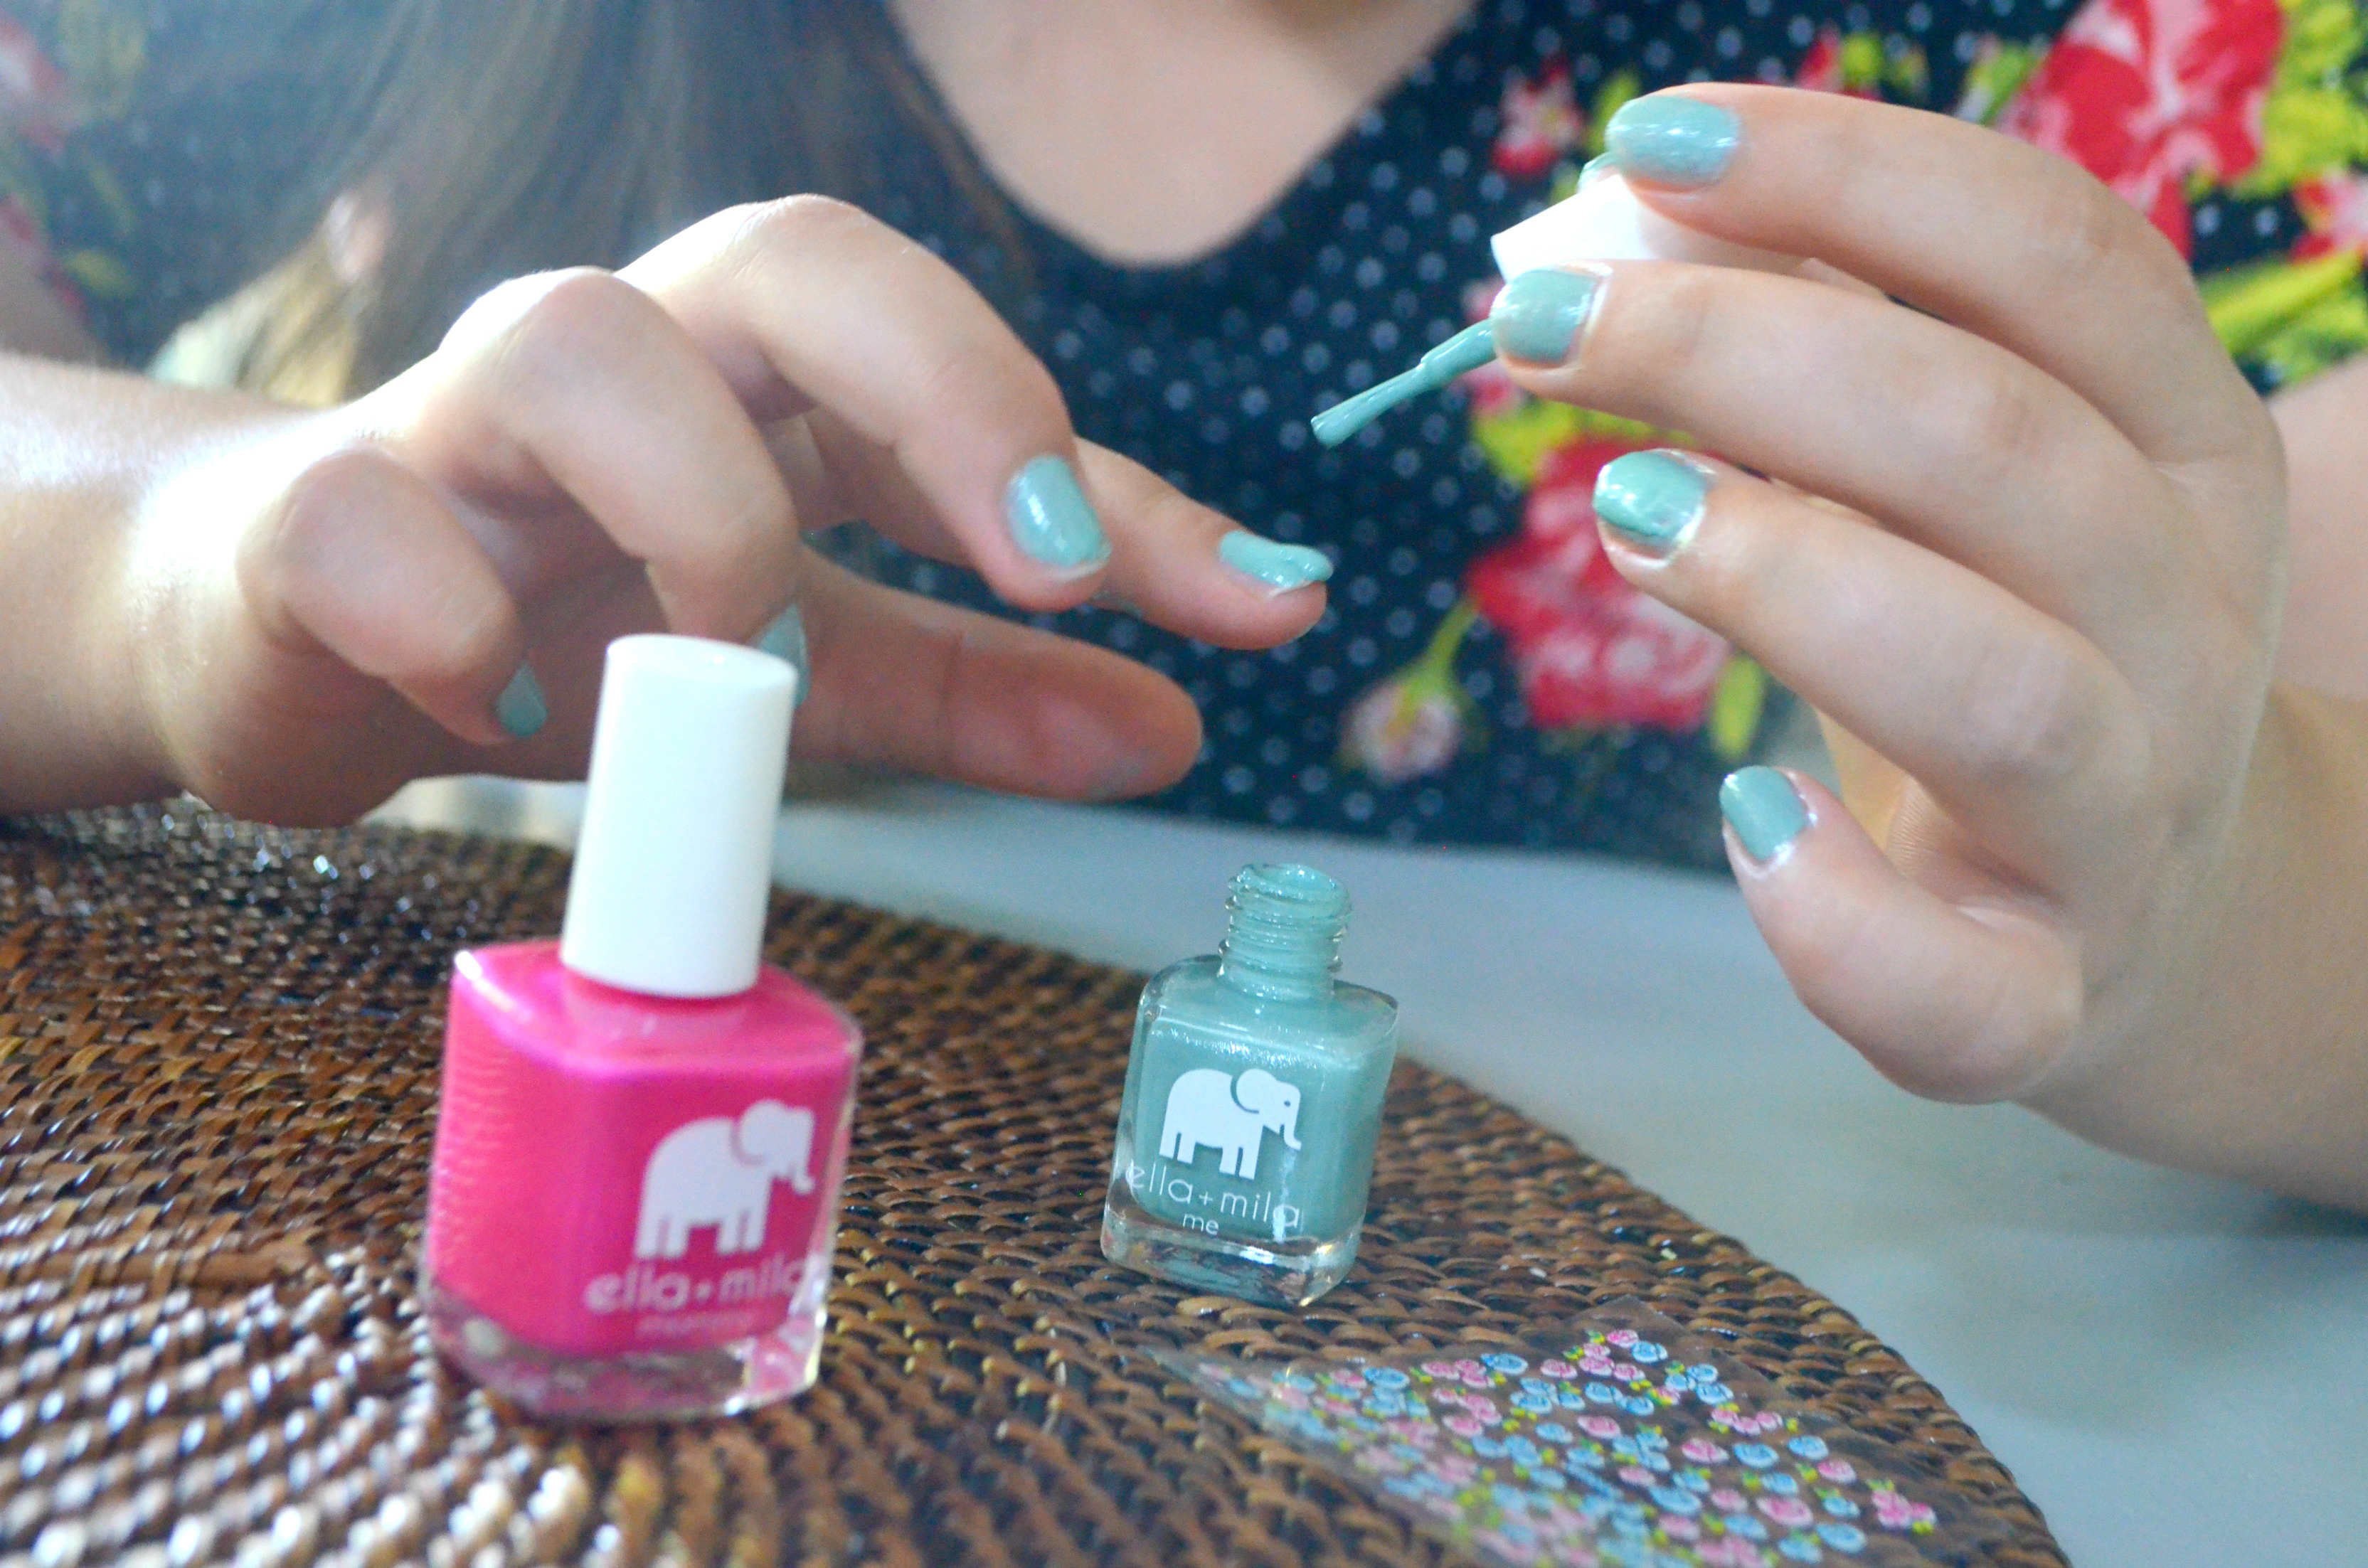 ella mila nail products deal - young girl painting her nails